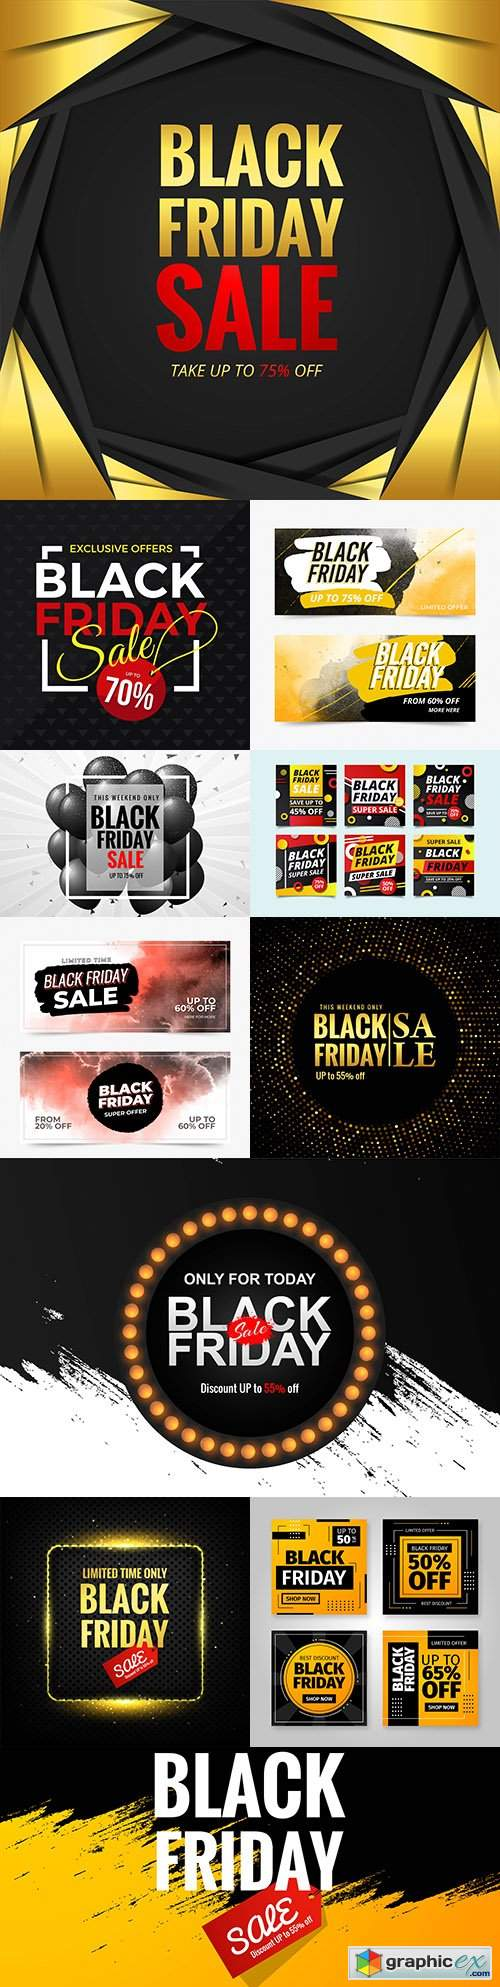 Black Friday and sale special design illustration 33